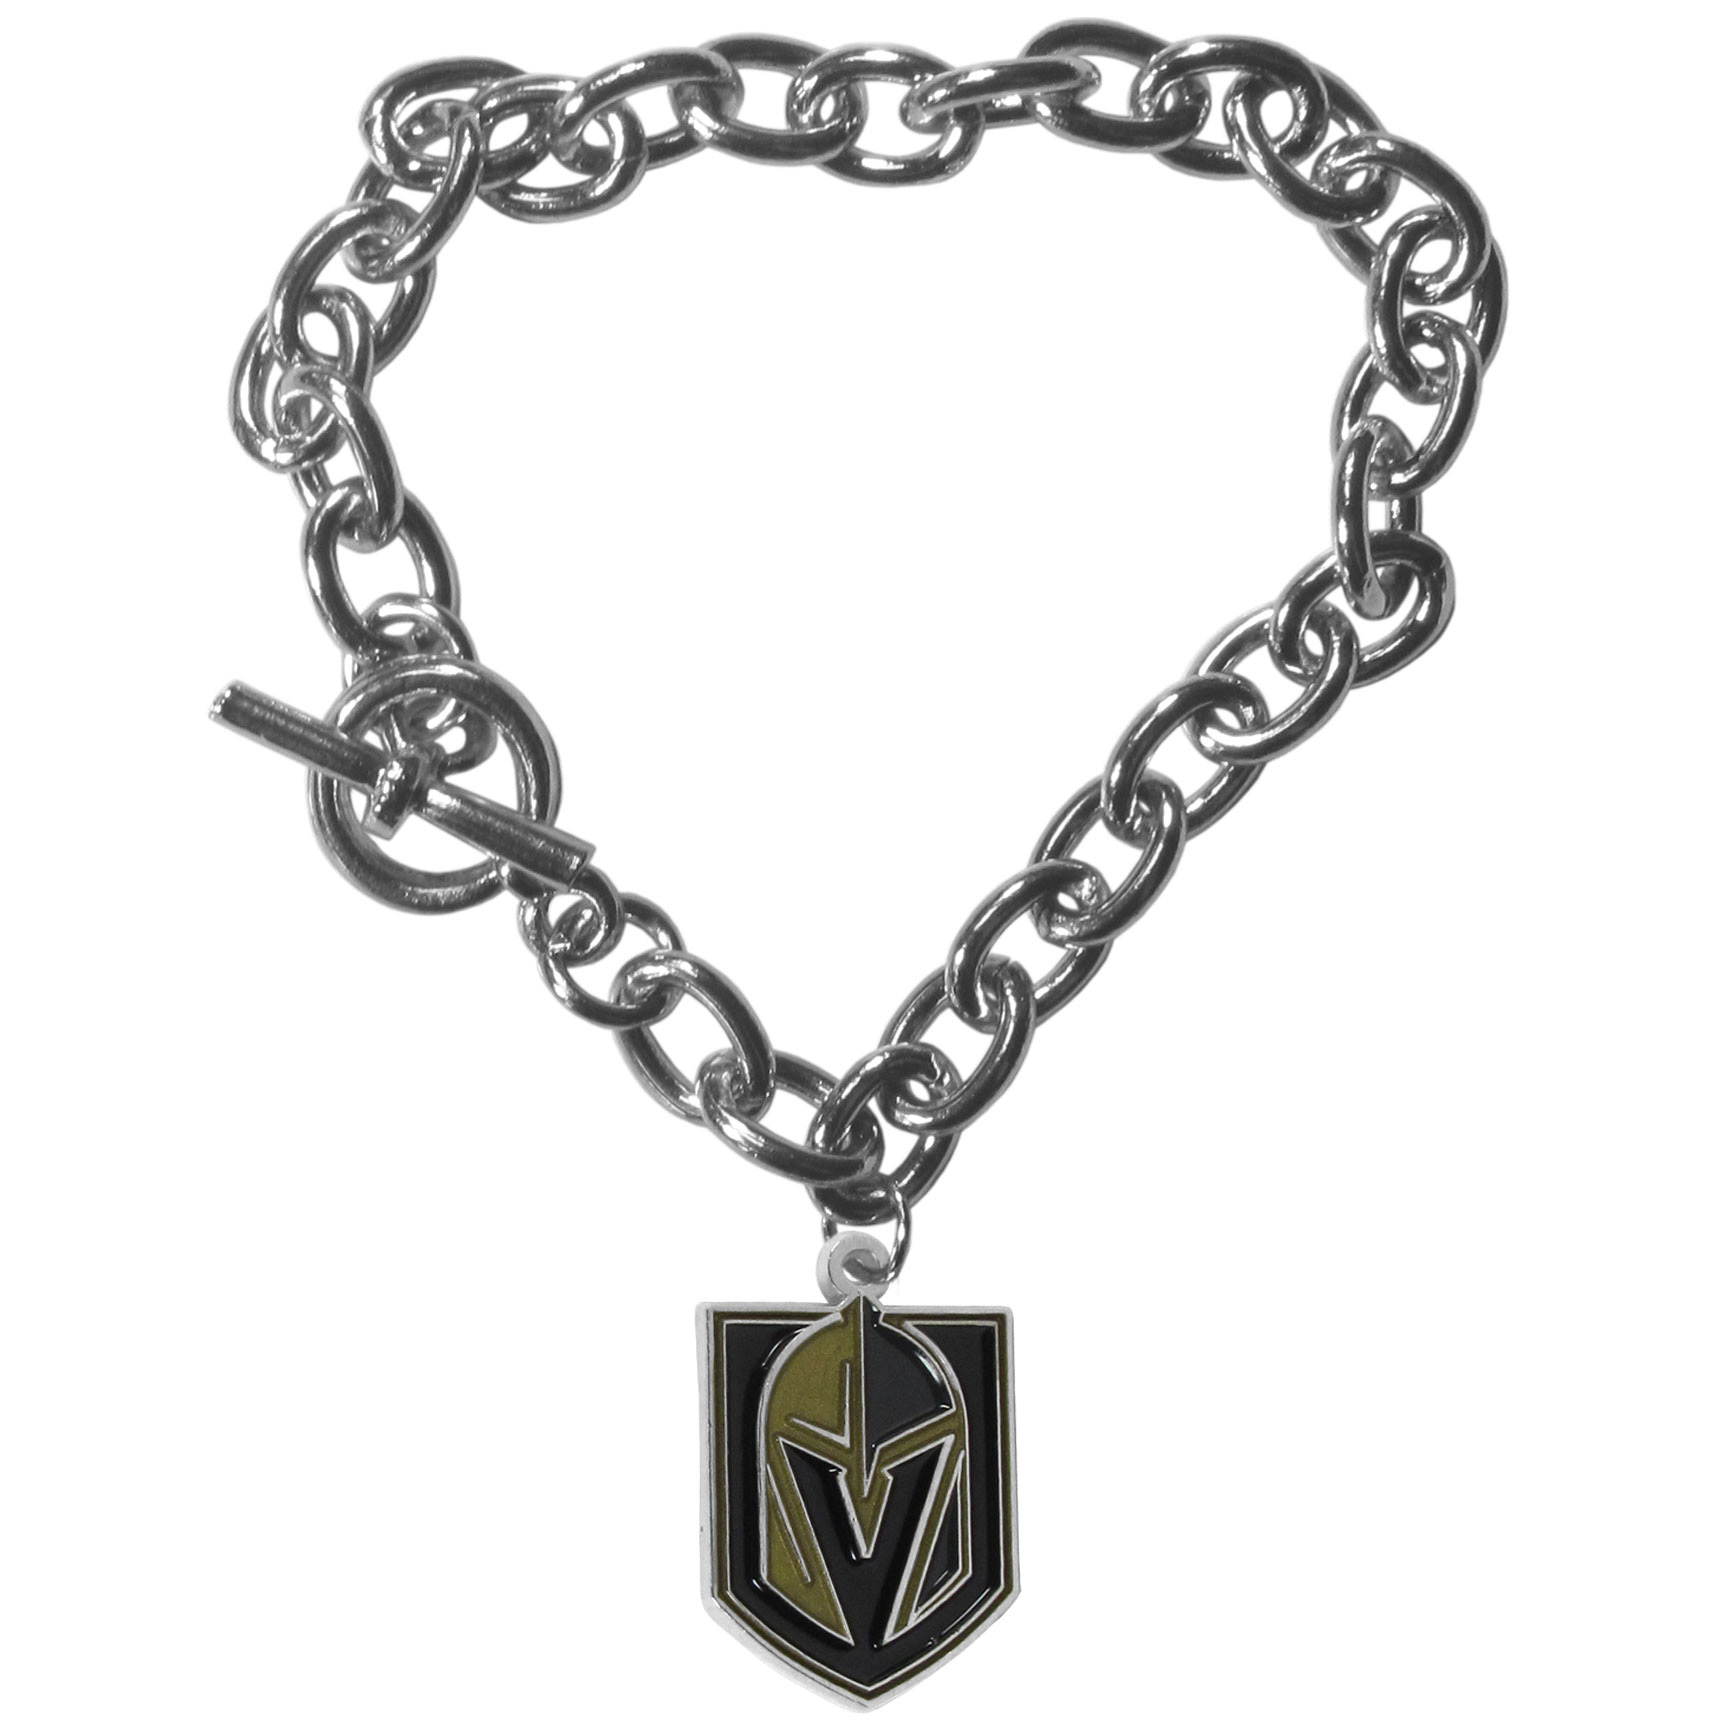 Las Vegas Golden Knights® Charm Chain Bracelet - Our classic single charm bracelet is a great way to show off your team pride! The 7.5 inch large link chain features a high polish Las Vegas Golden Knights® charm and features a toggle clasp which makes it super easy to take on and off.